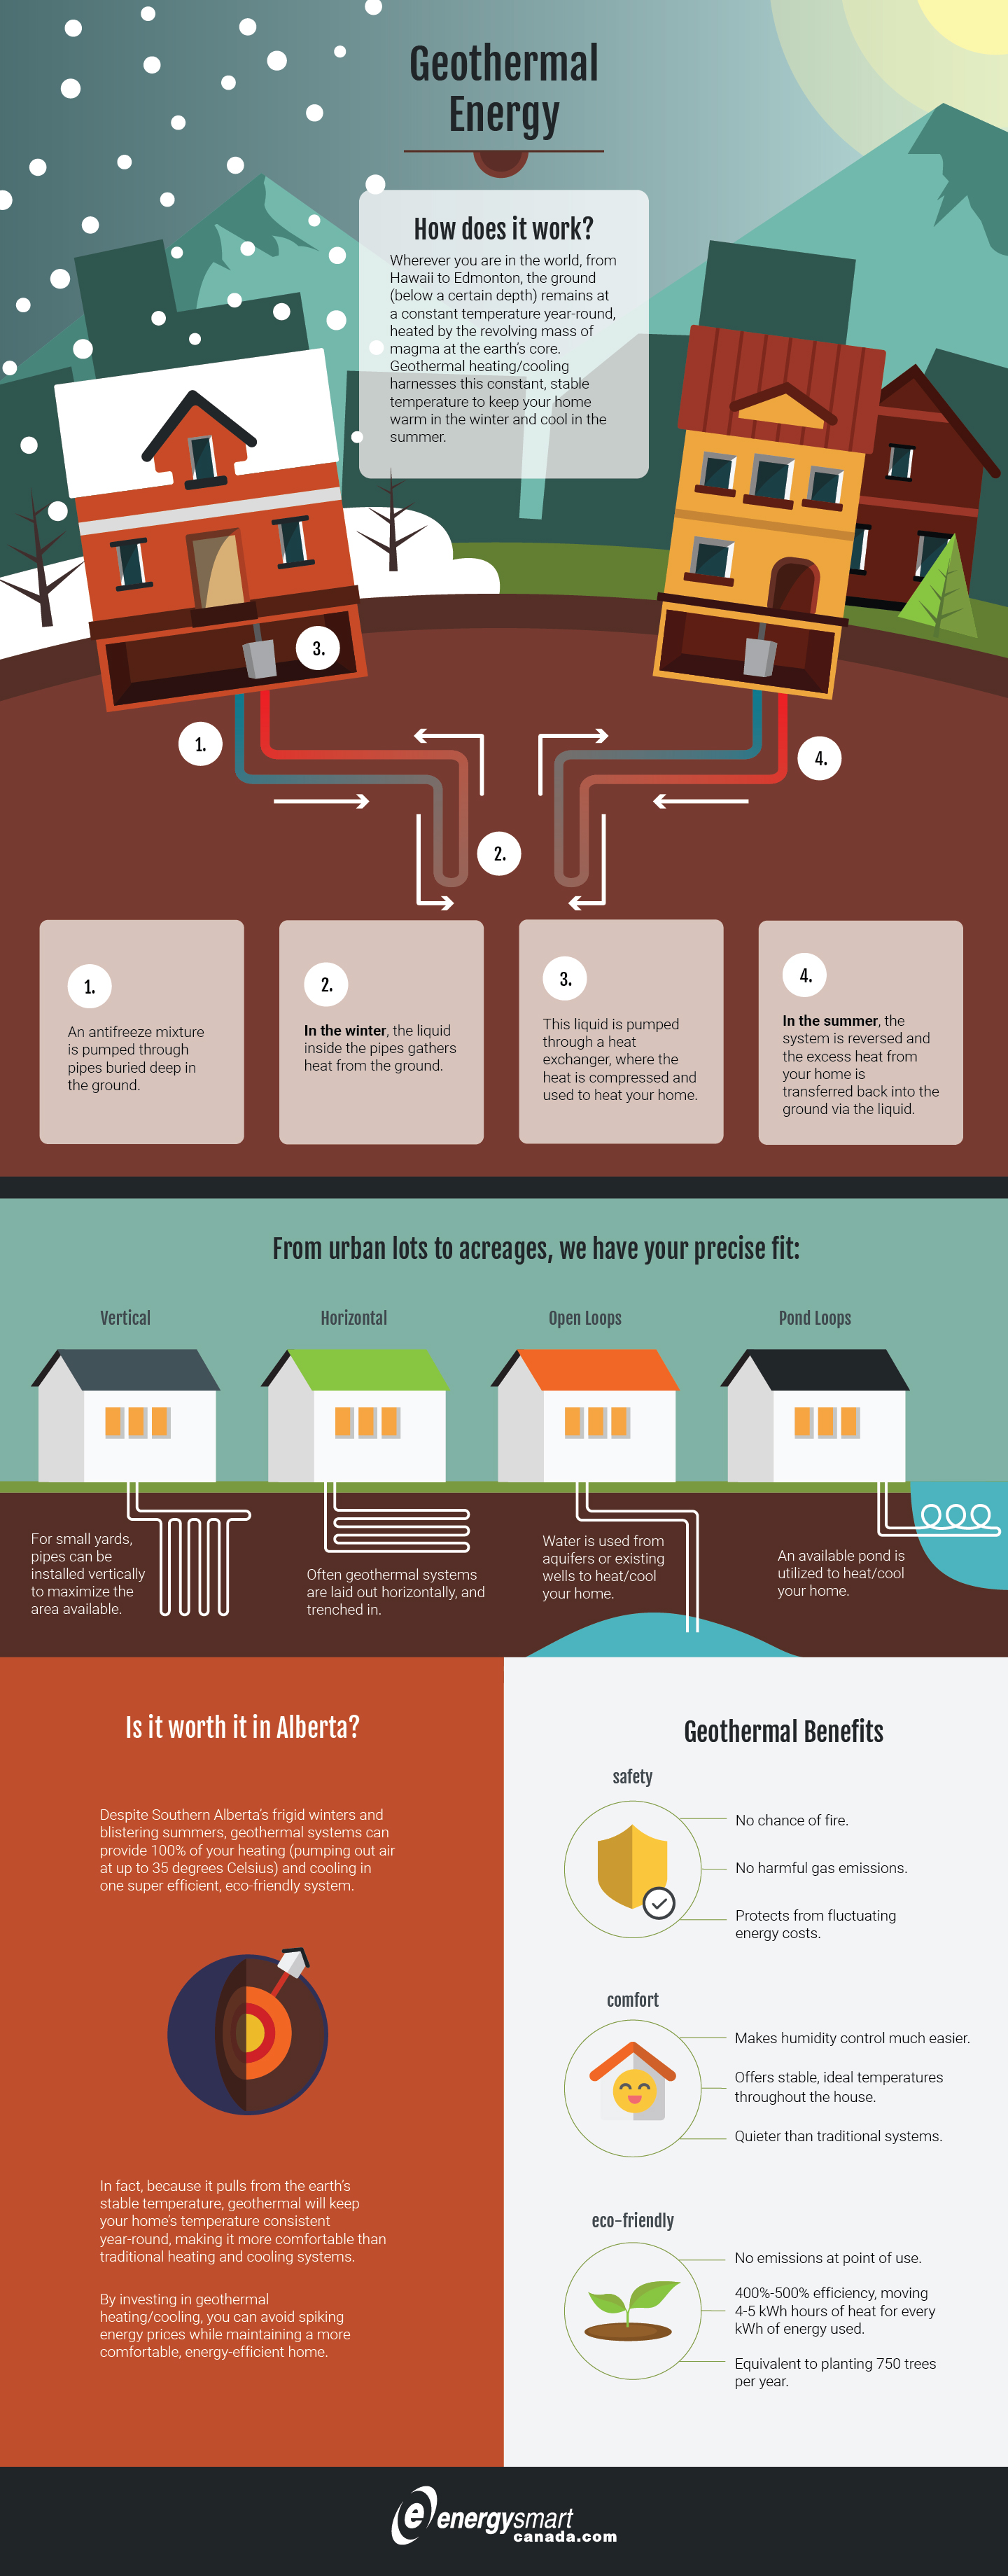 Geothermal Energy How It Works